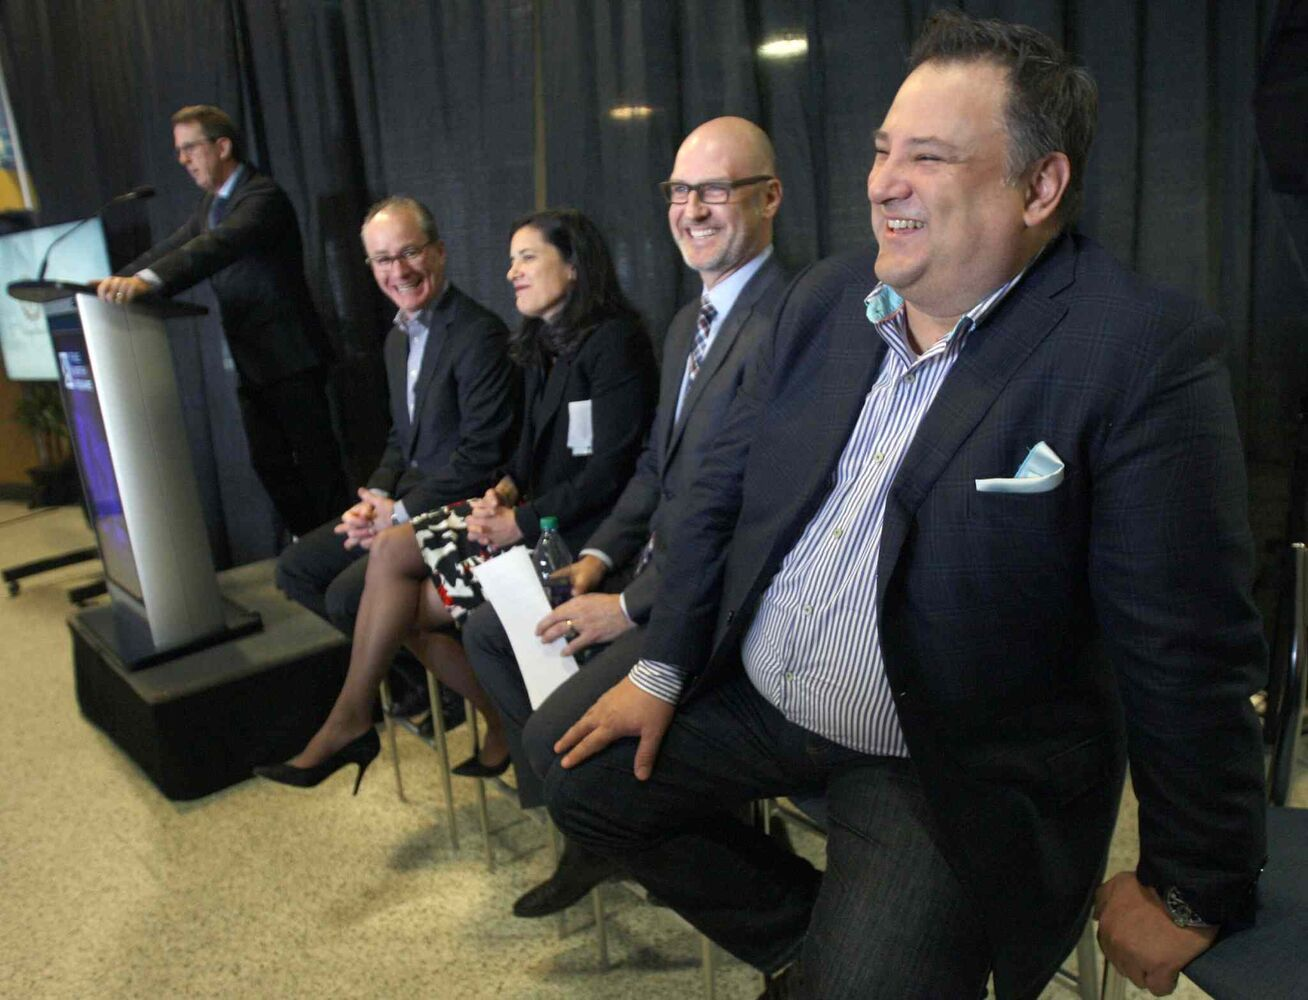 Tom Gaglardi, right, Chairman and CEO of Sutton Place Hotels laughs as Mark Chipman introduces him at the news conference. (JOE BRYKSA / WINNIPEG FREE PRESS )